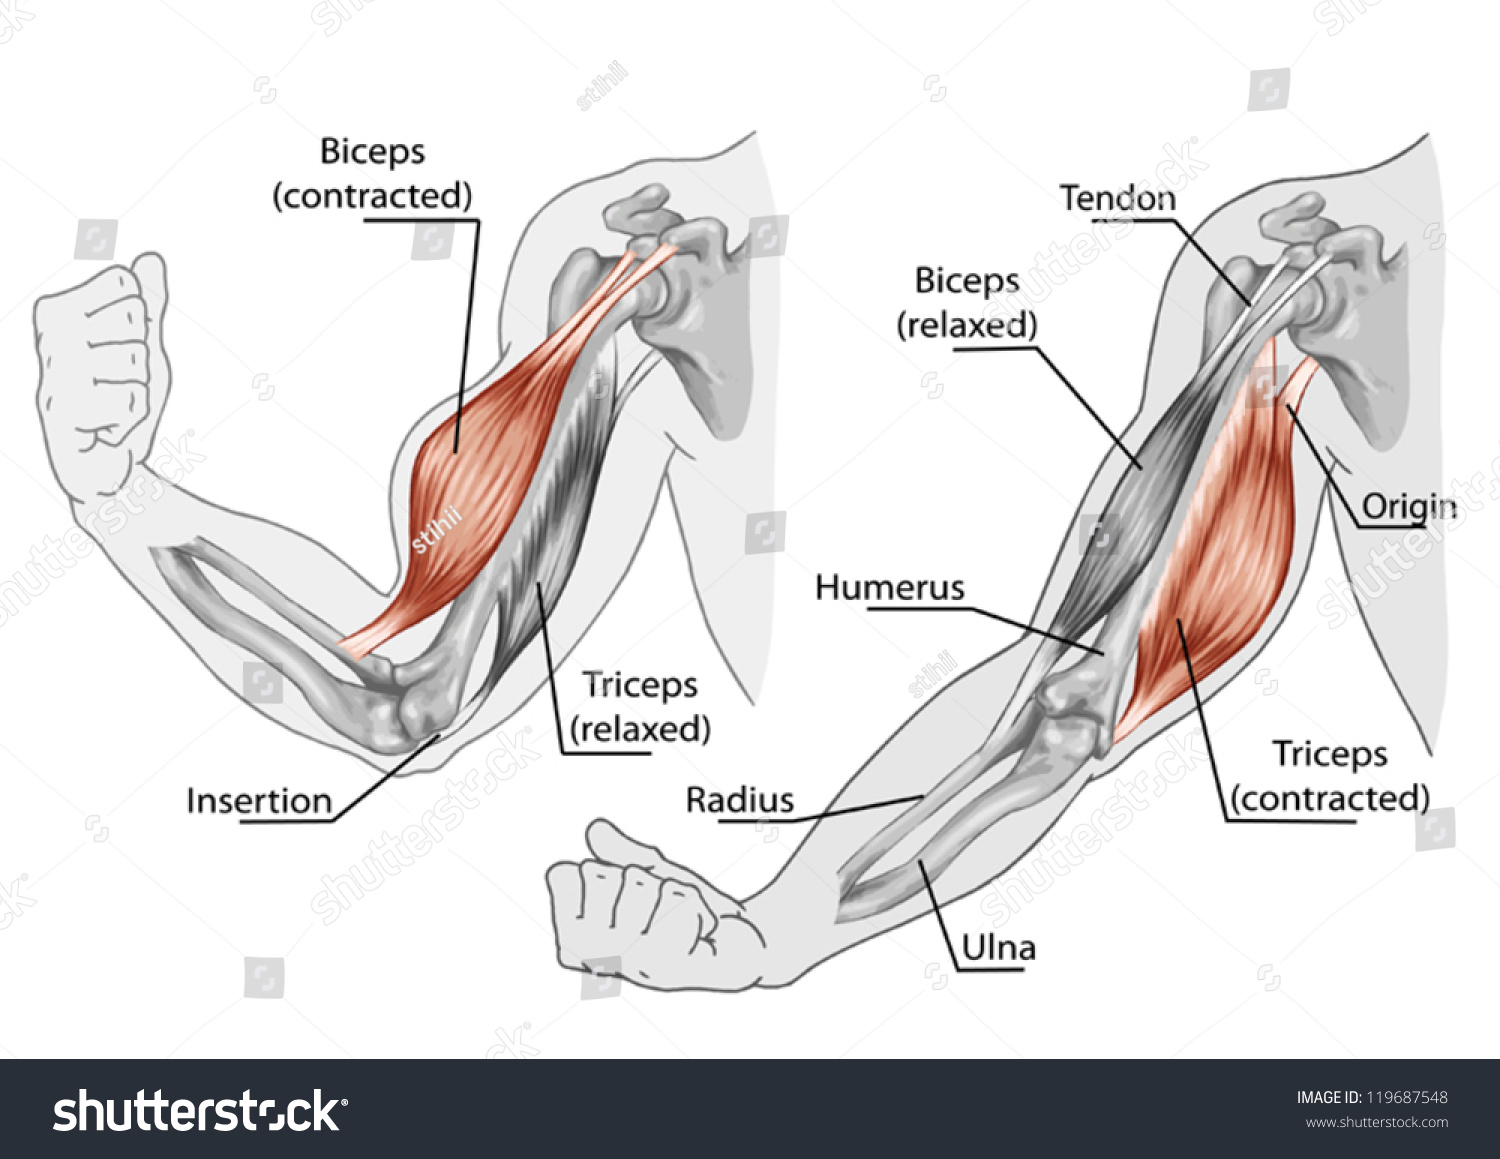 Anatomical Picture Of The Biceps And Triceps